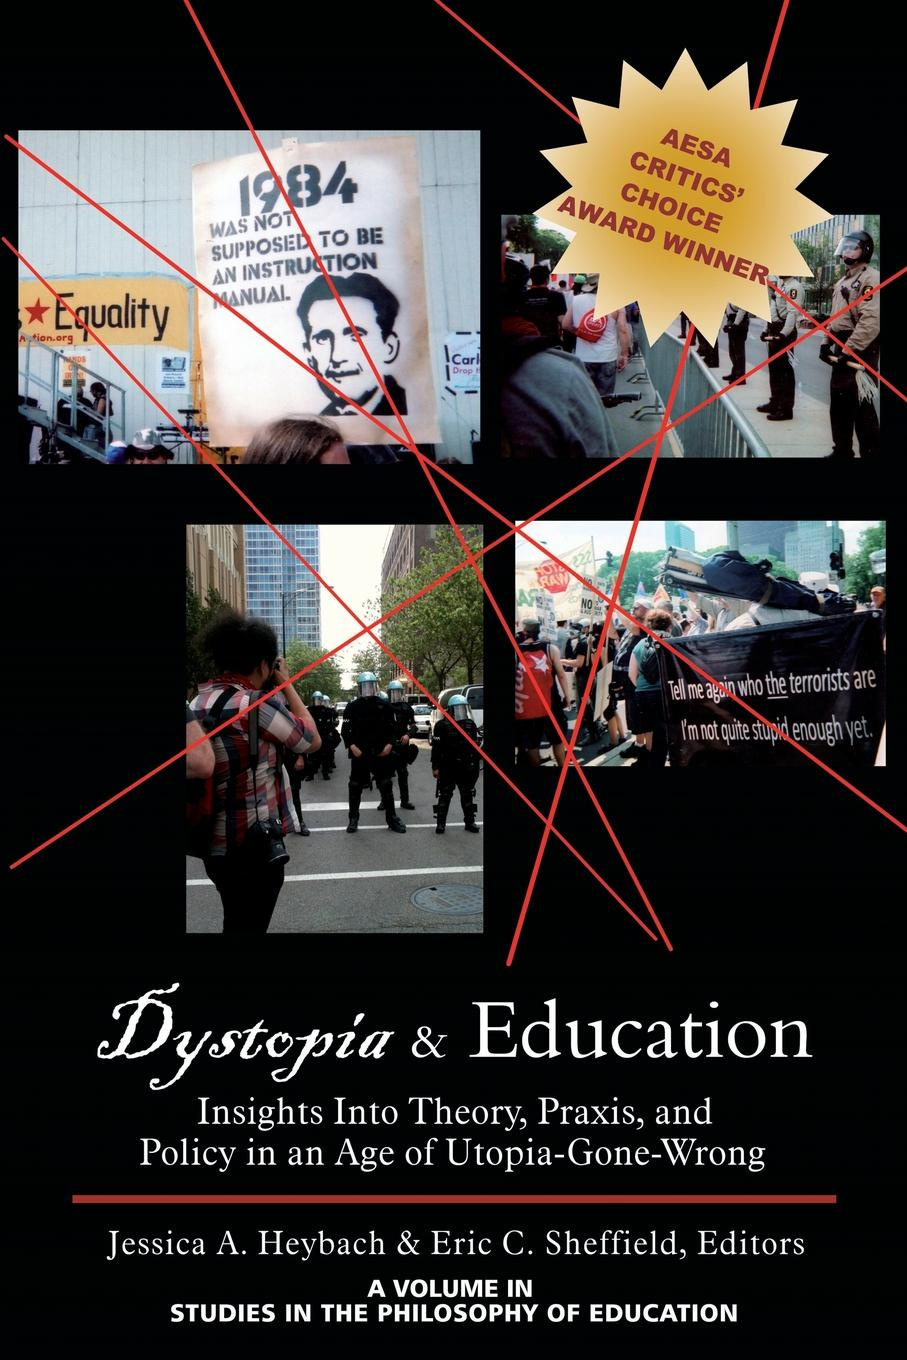 Dystopia and Education. Insights Into Theory, Praxis, and Policy in an Age of Utopia-Gone-Wrong doris dier the motifs of utopia and dystopia in aldous huxley s brave new world